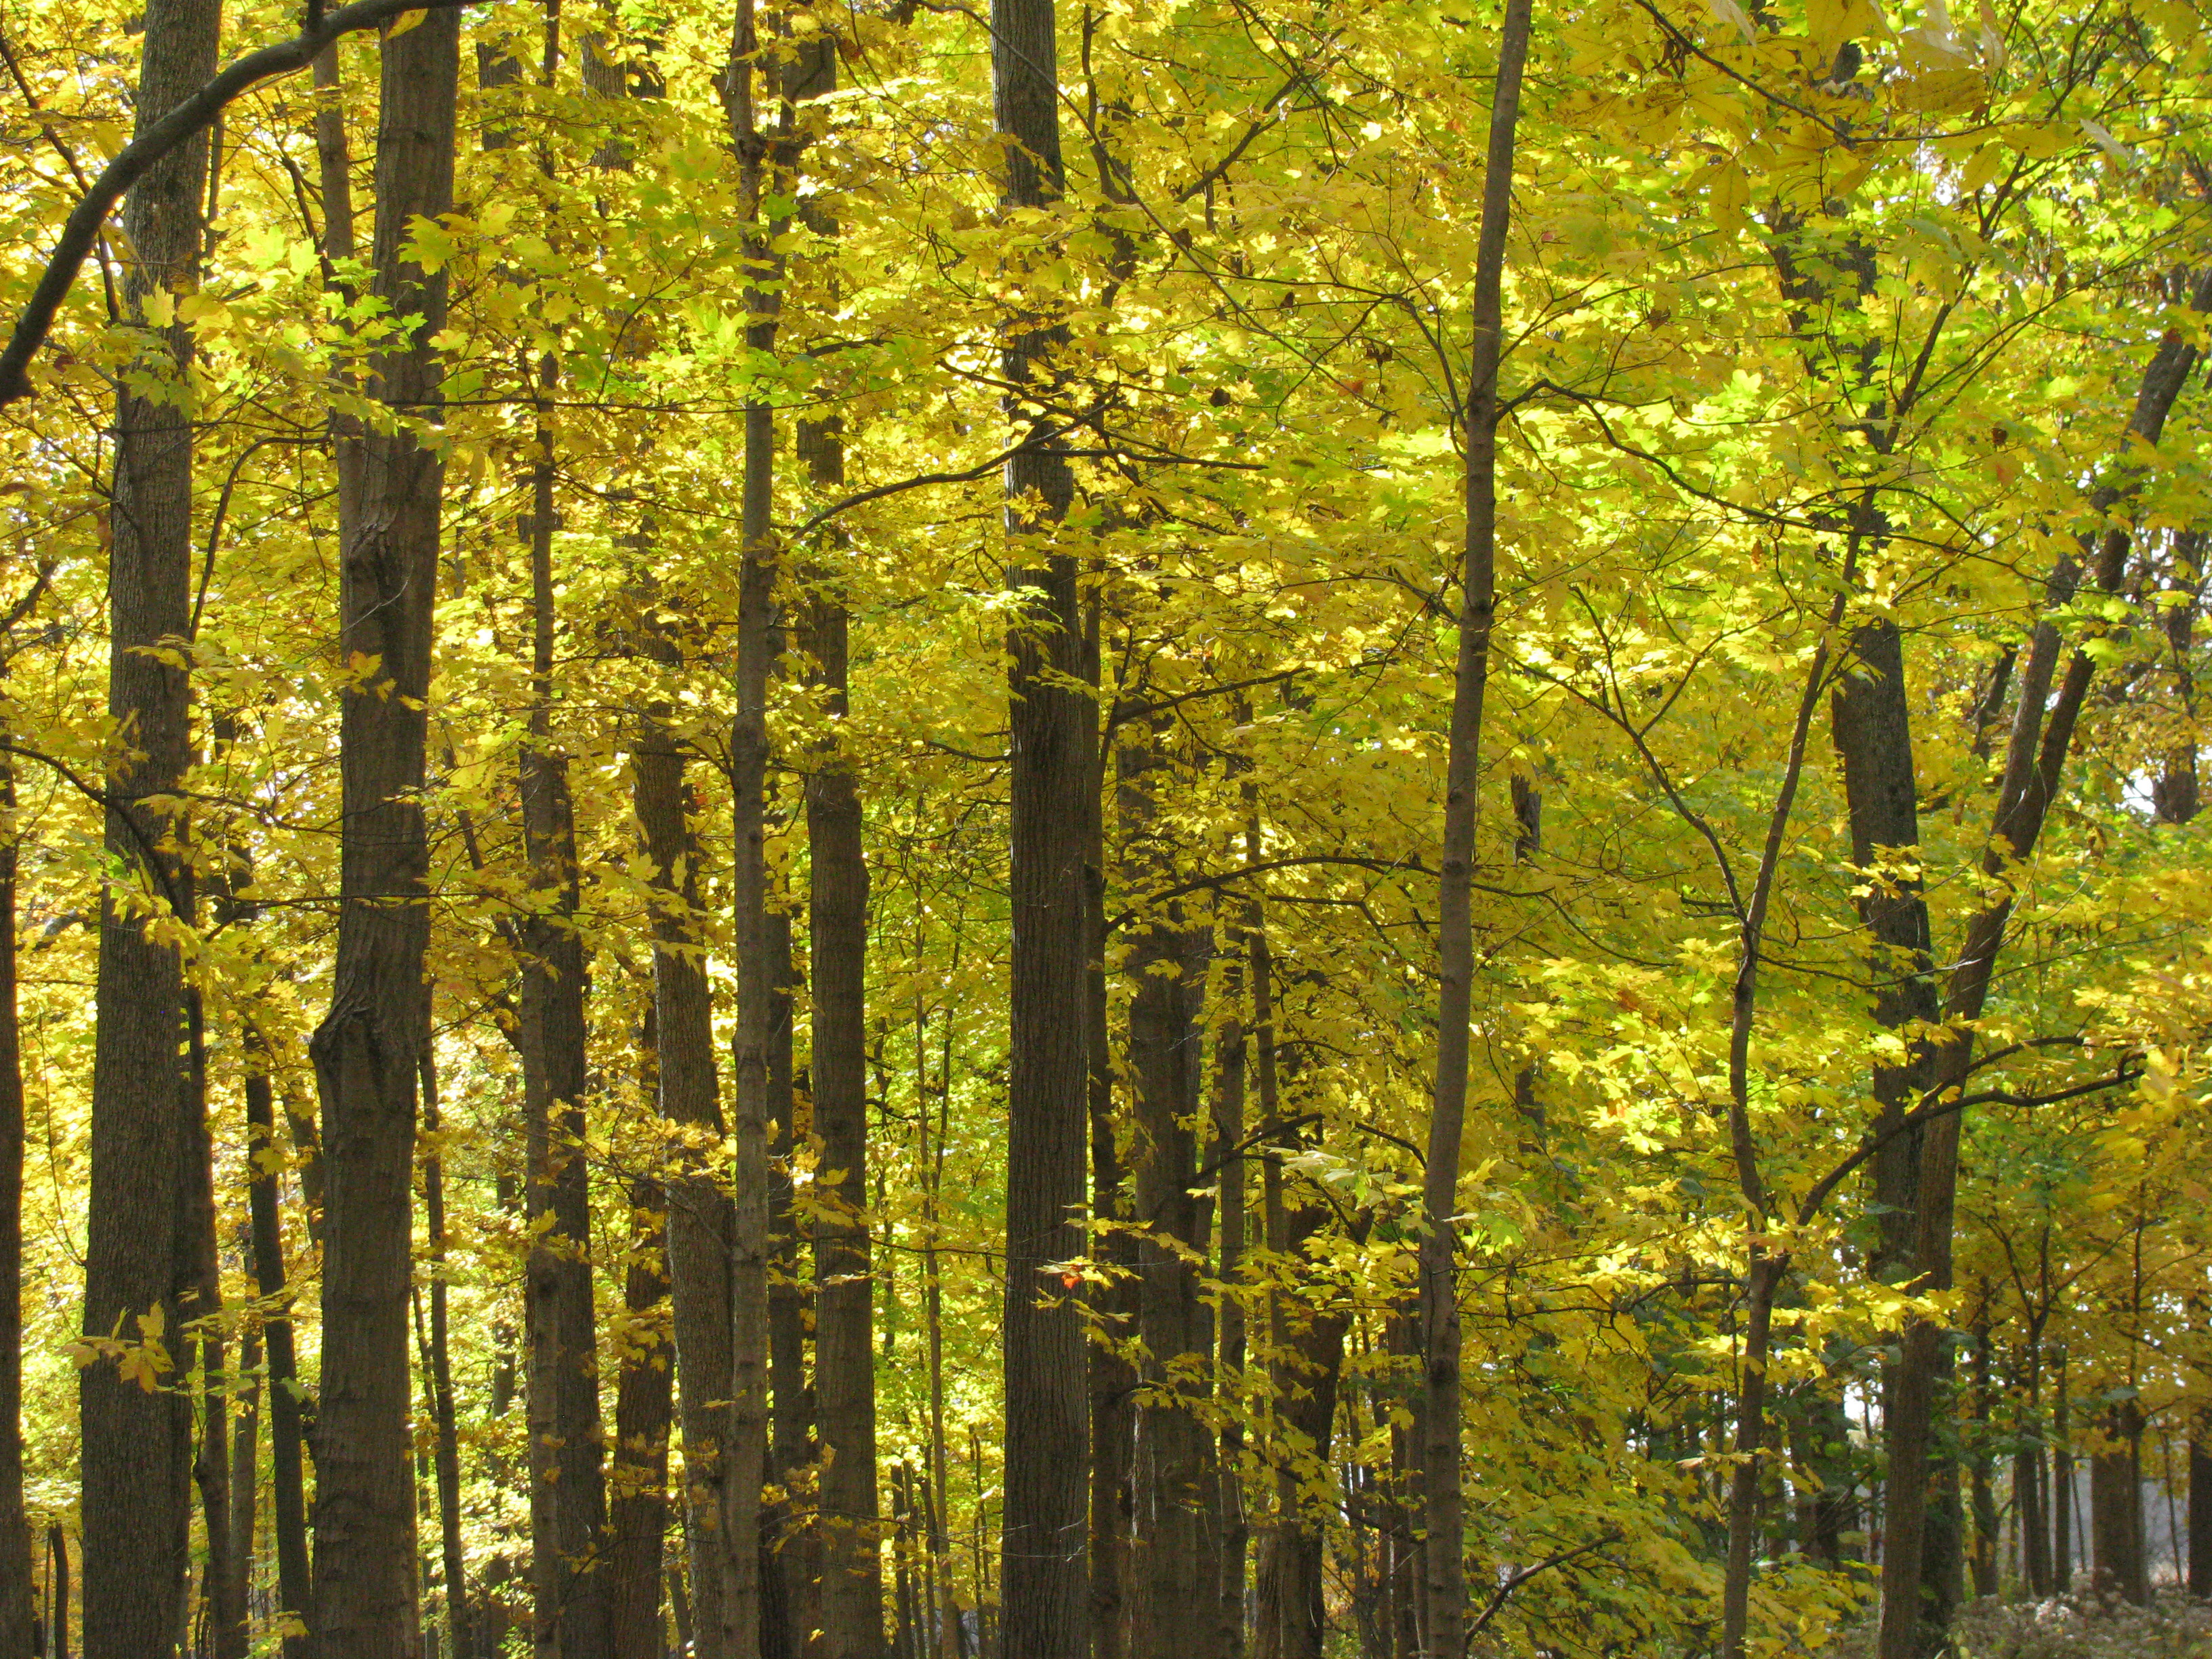 The leaves in Big Woods turn bright yellow early last month. Photo: Sue Quarto, FESS